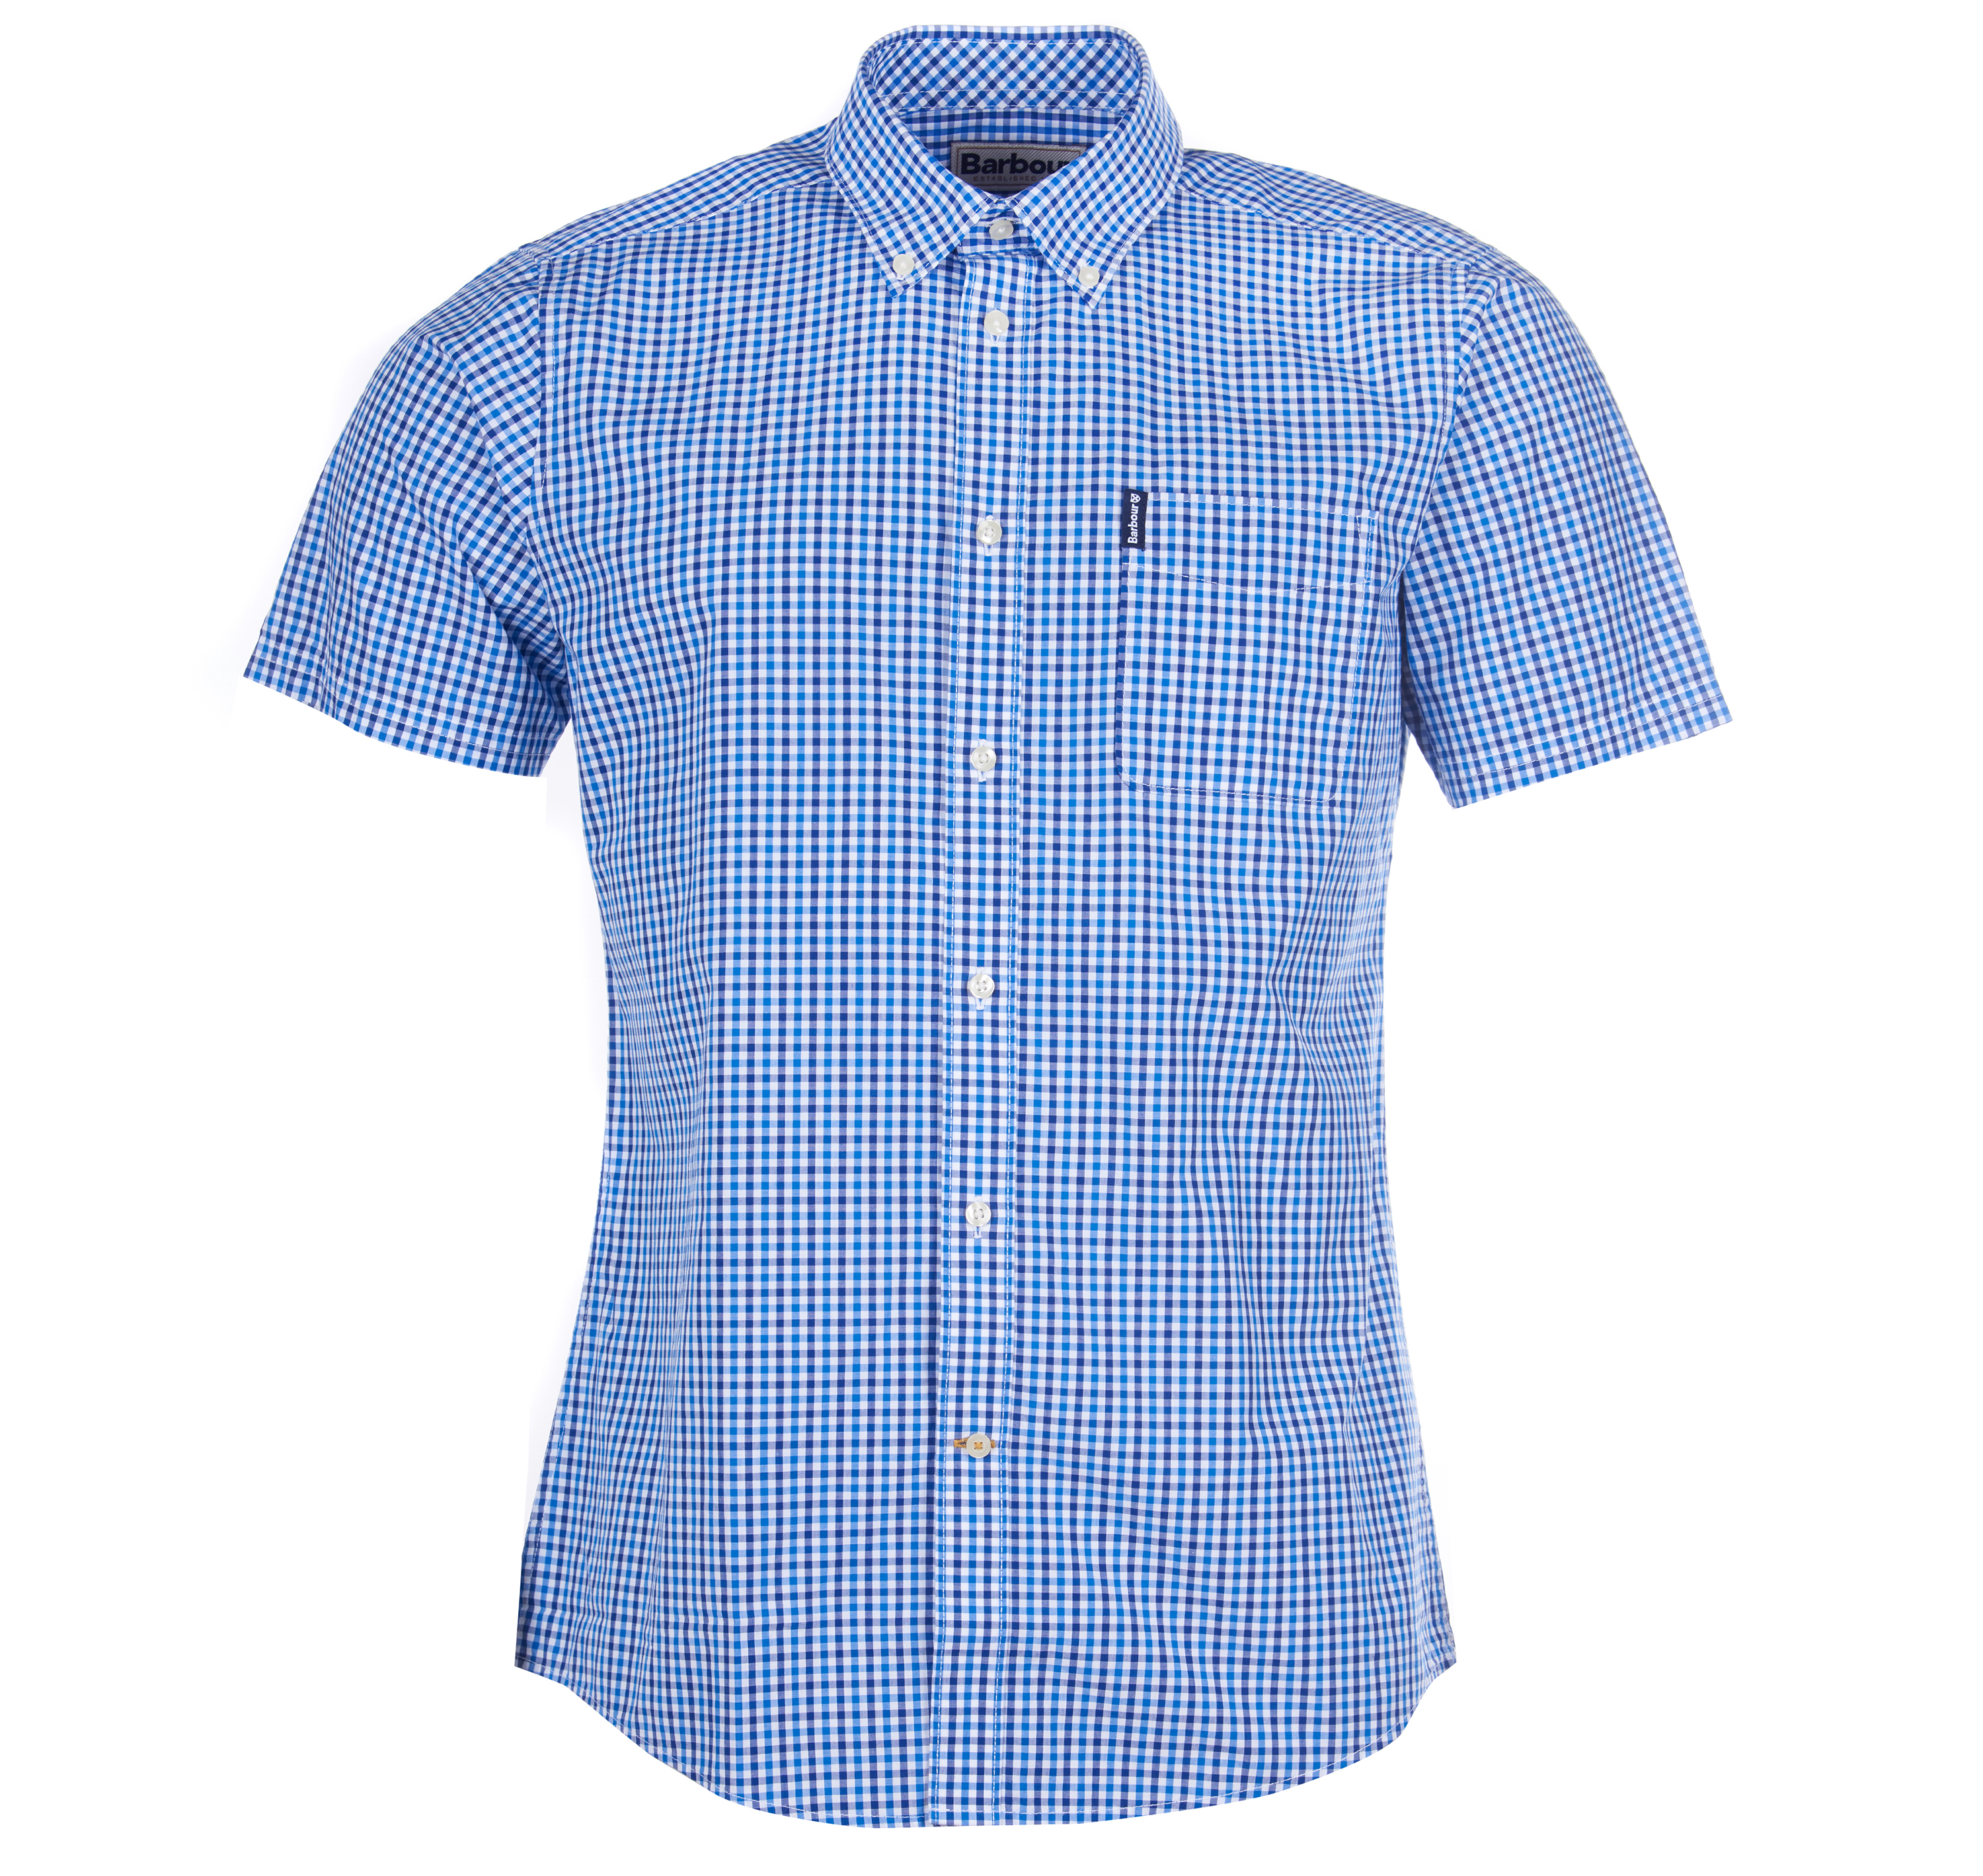 Barbour Gingham 16 Tailored Short Sleeved Shirt Blue Tailored Fit